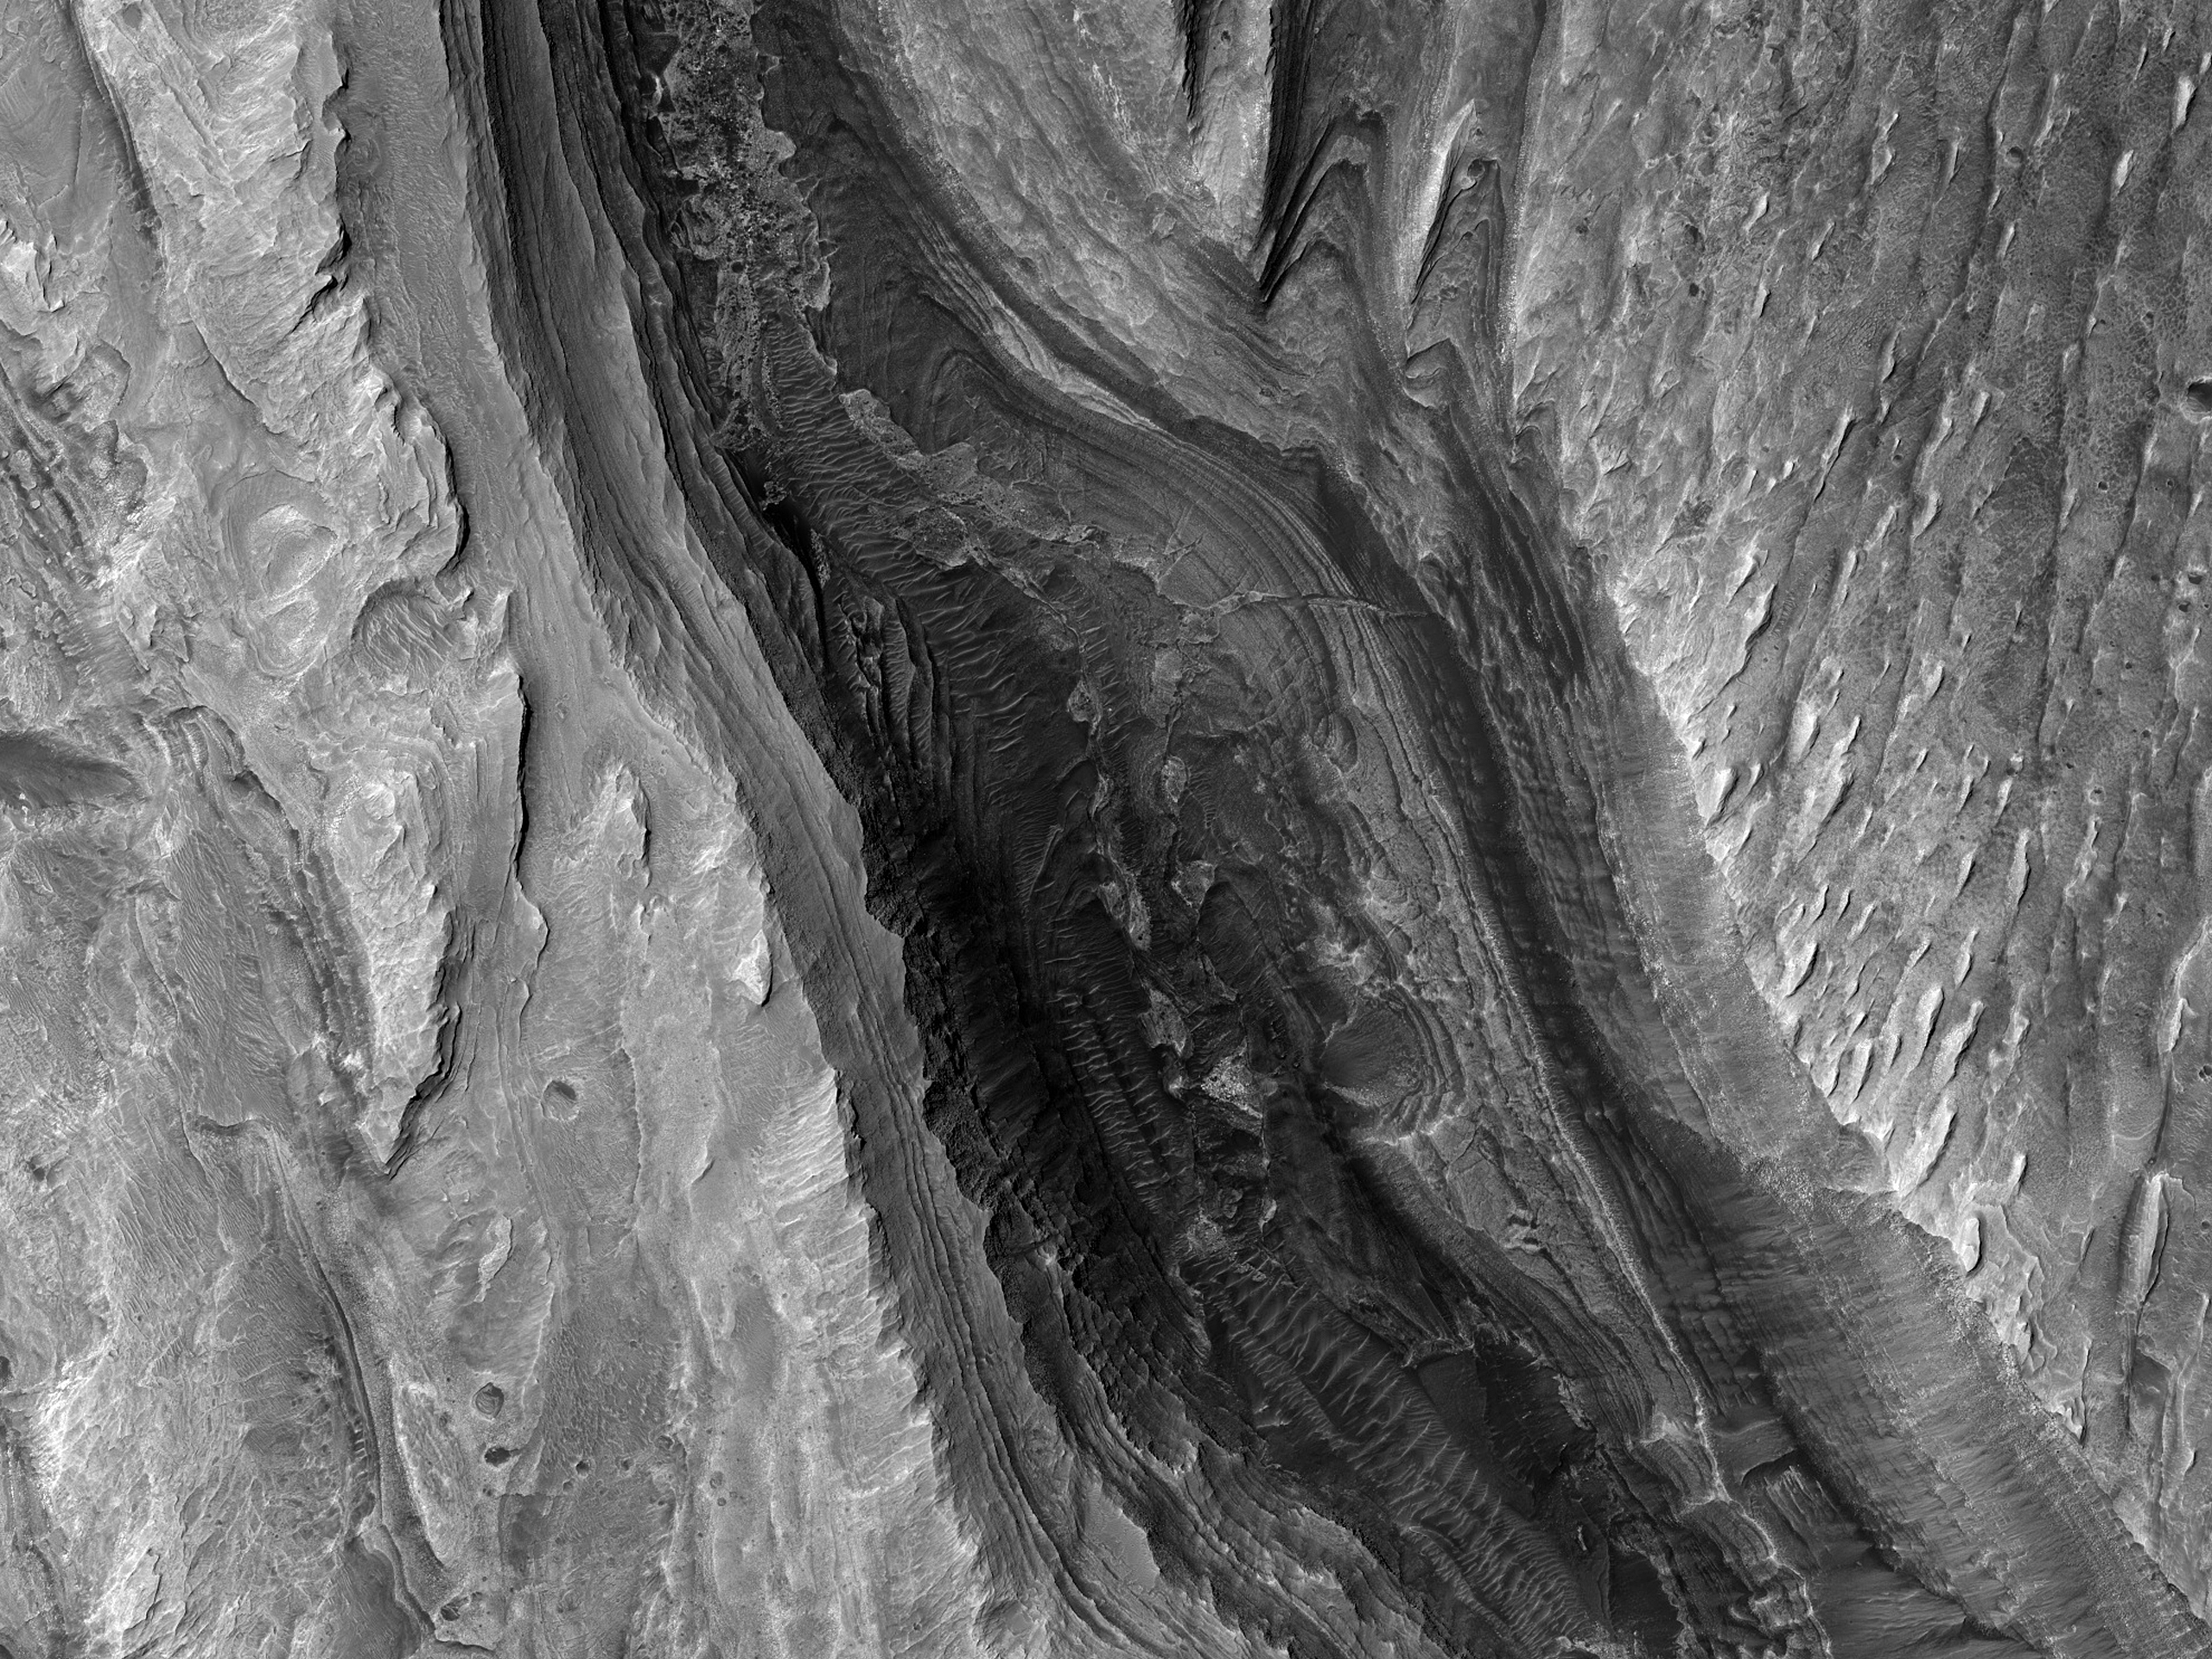 A Chasm in Gale Crater's Interior Mound